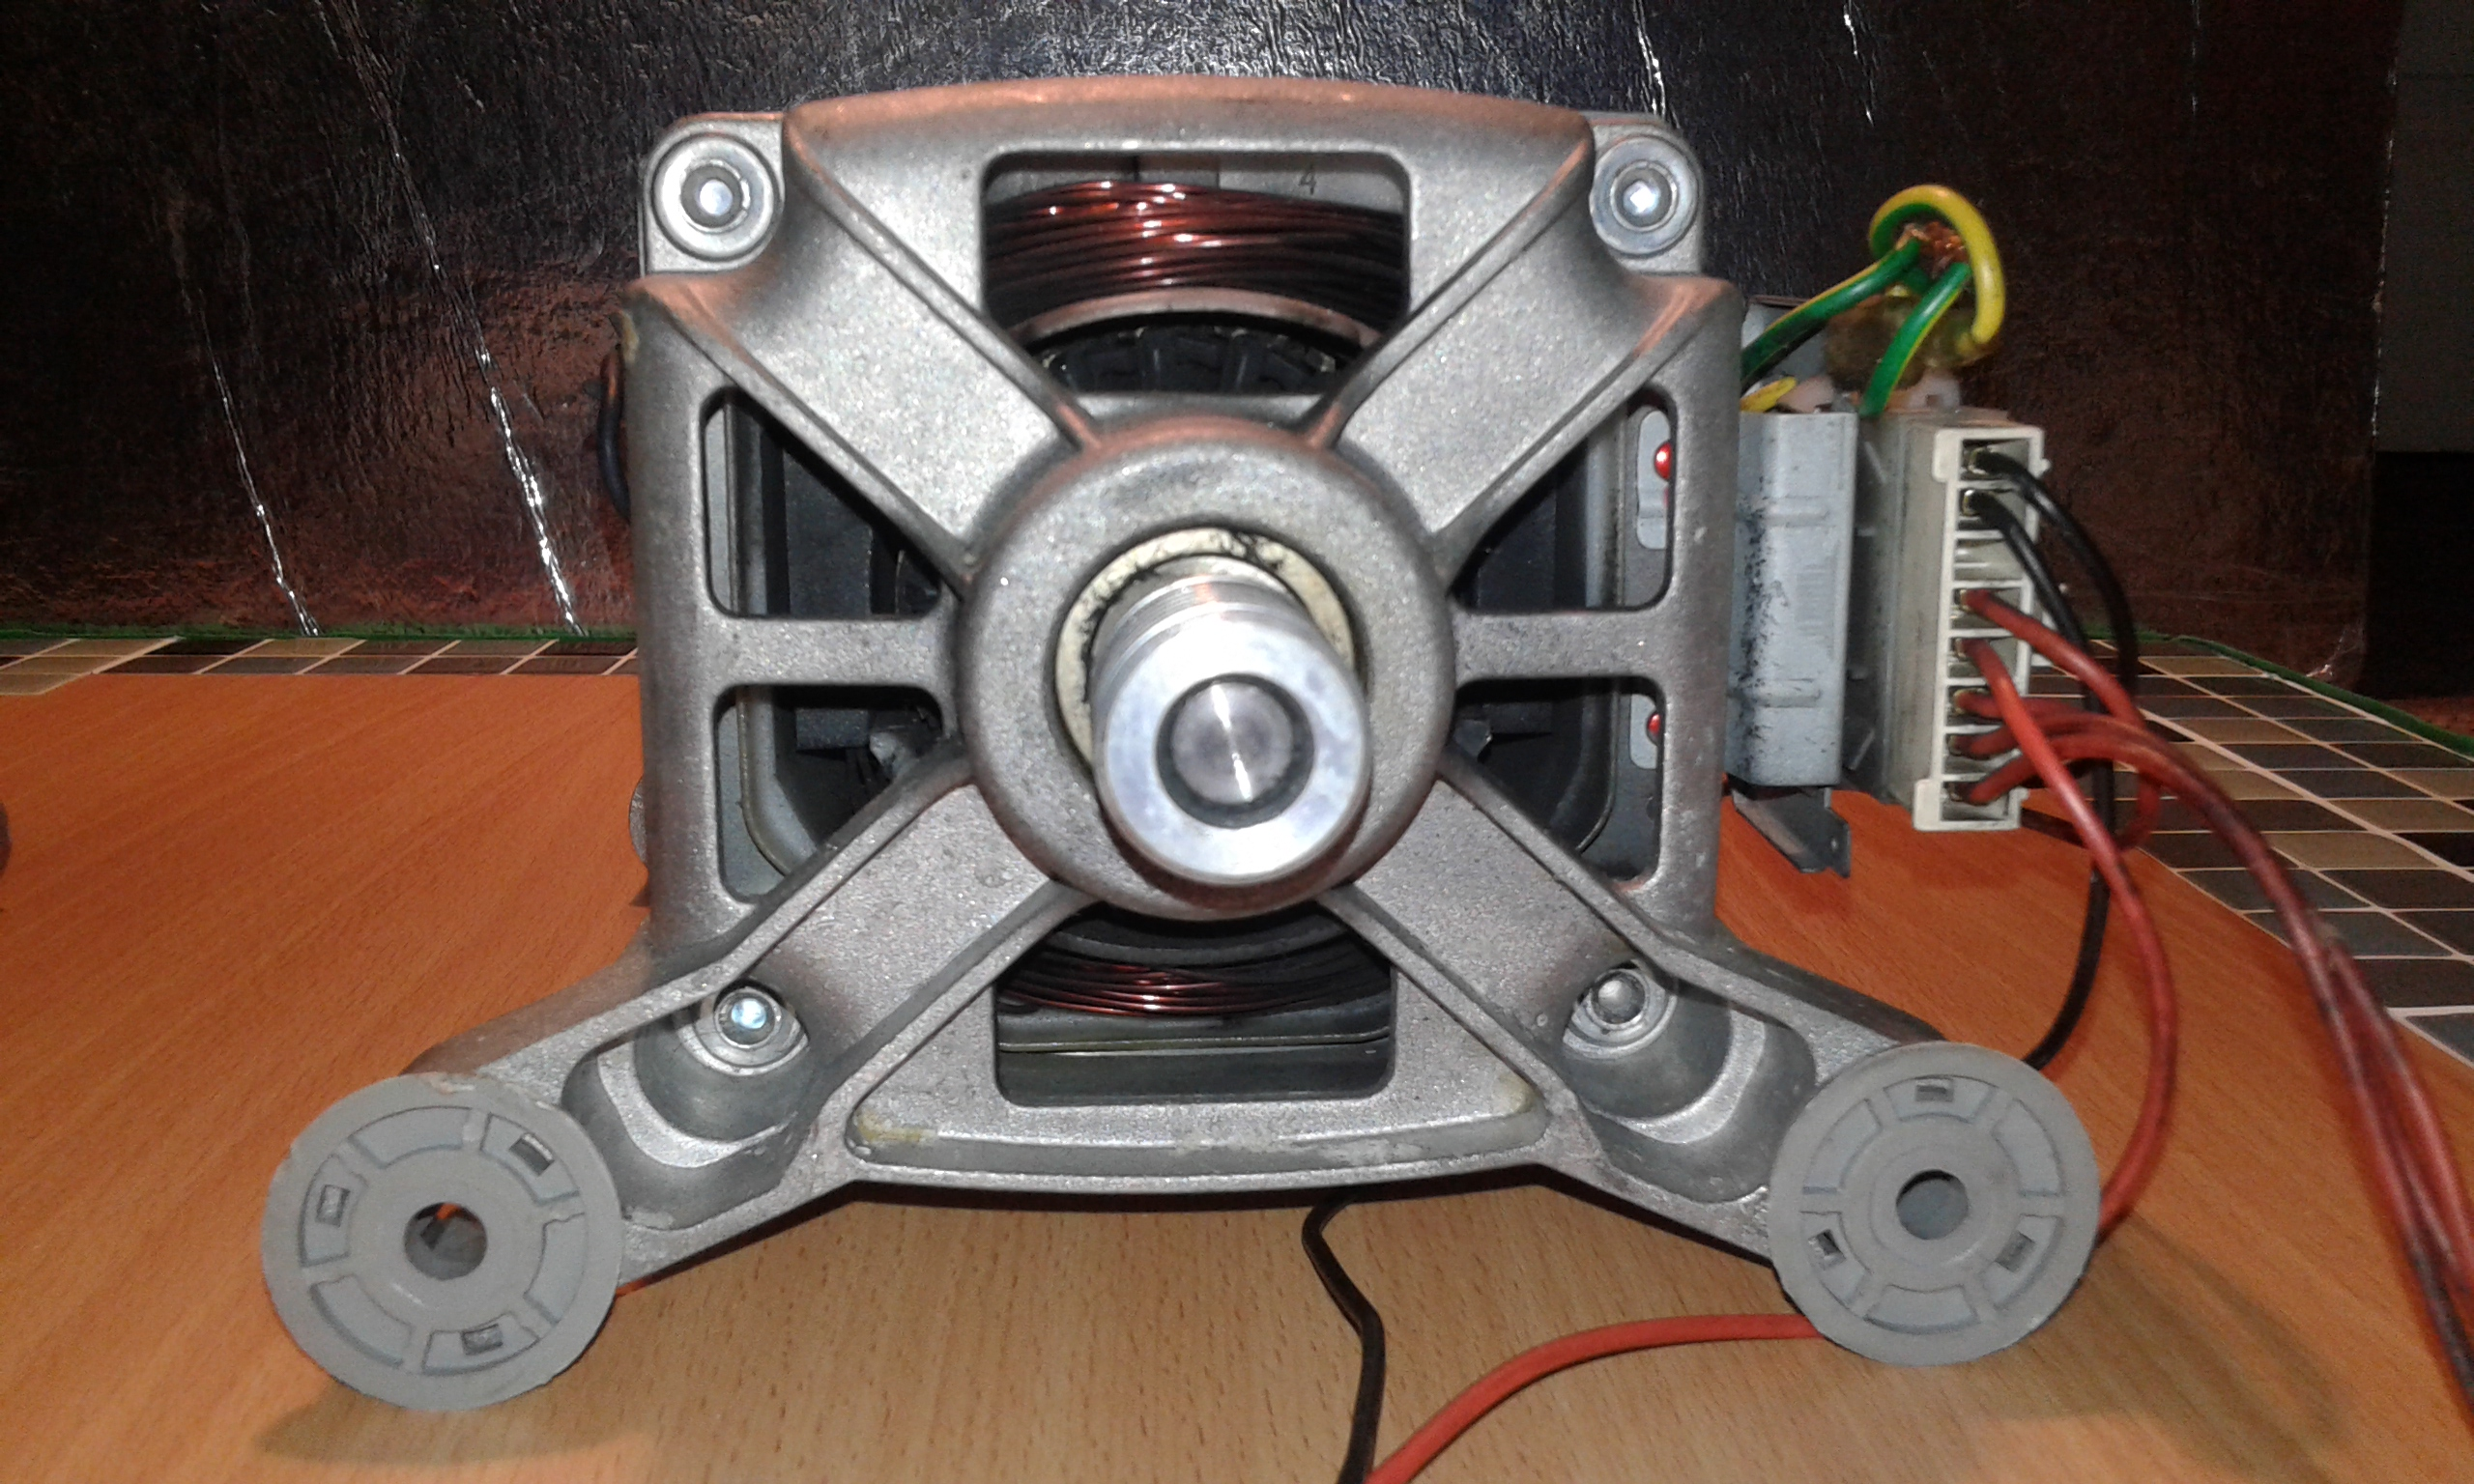 Picture of The Washing Machine Motor